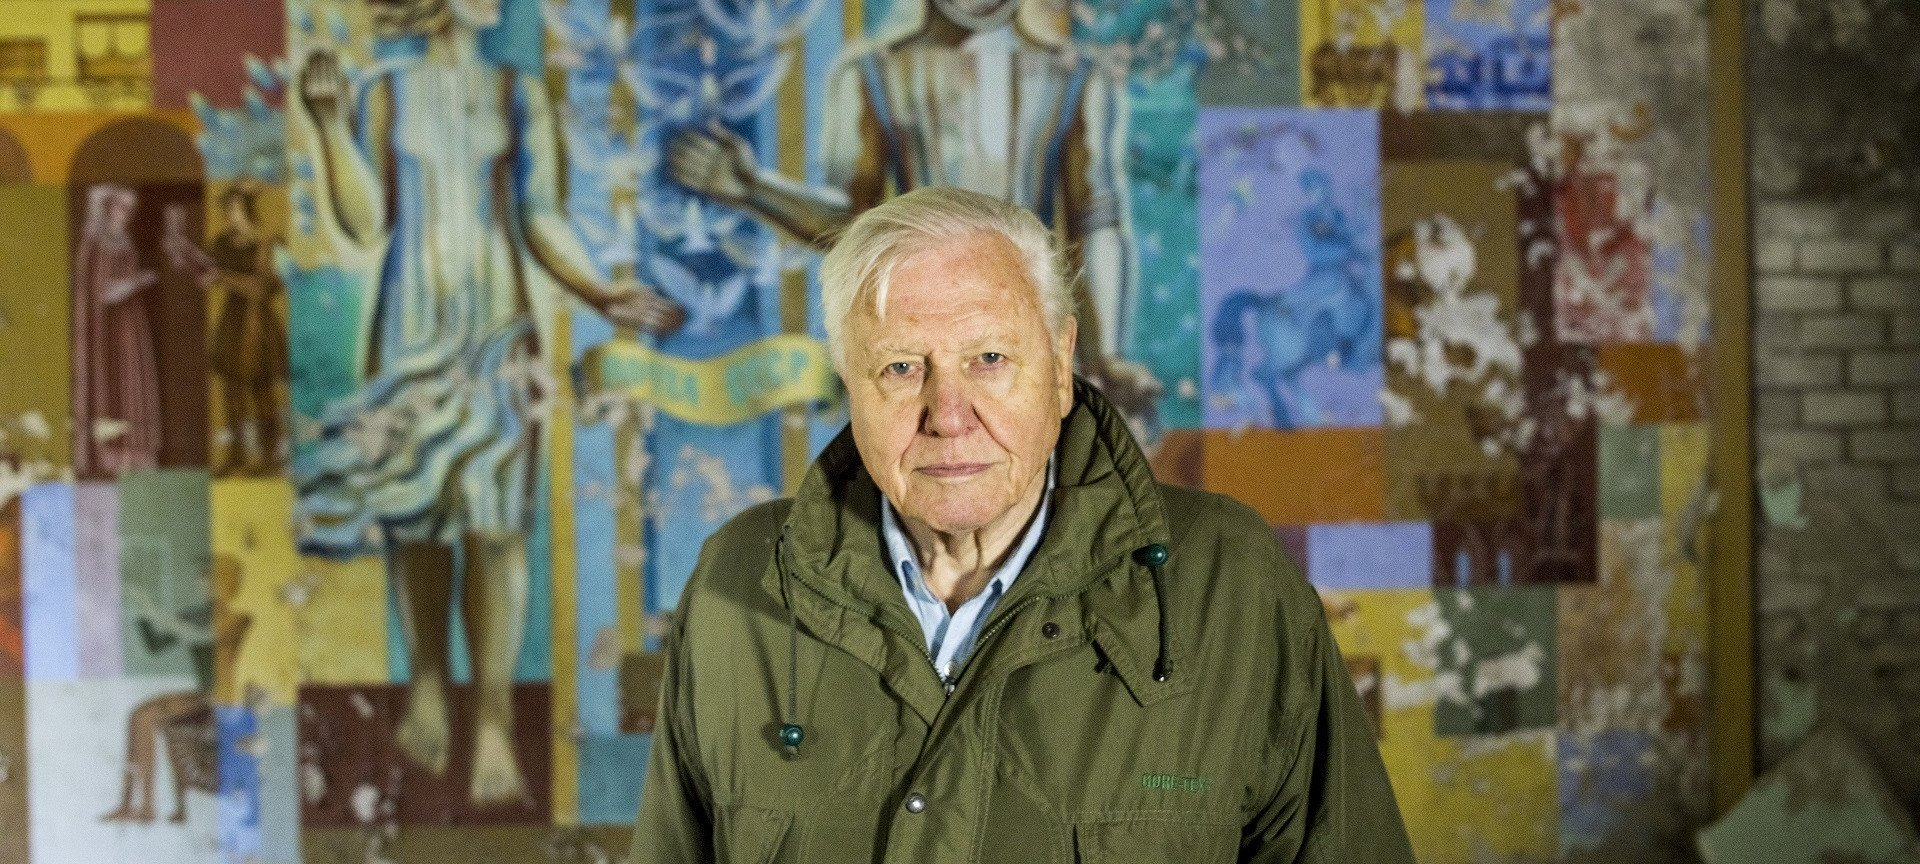 David Attenborough představuje nový dokument – A Life on our Planet